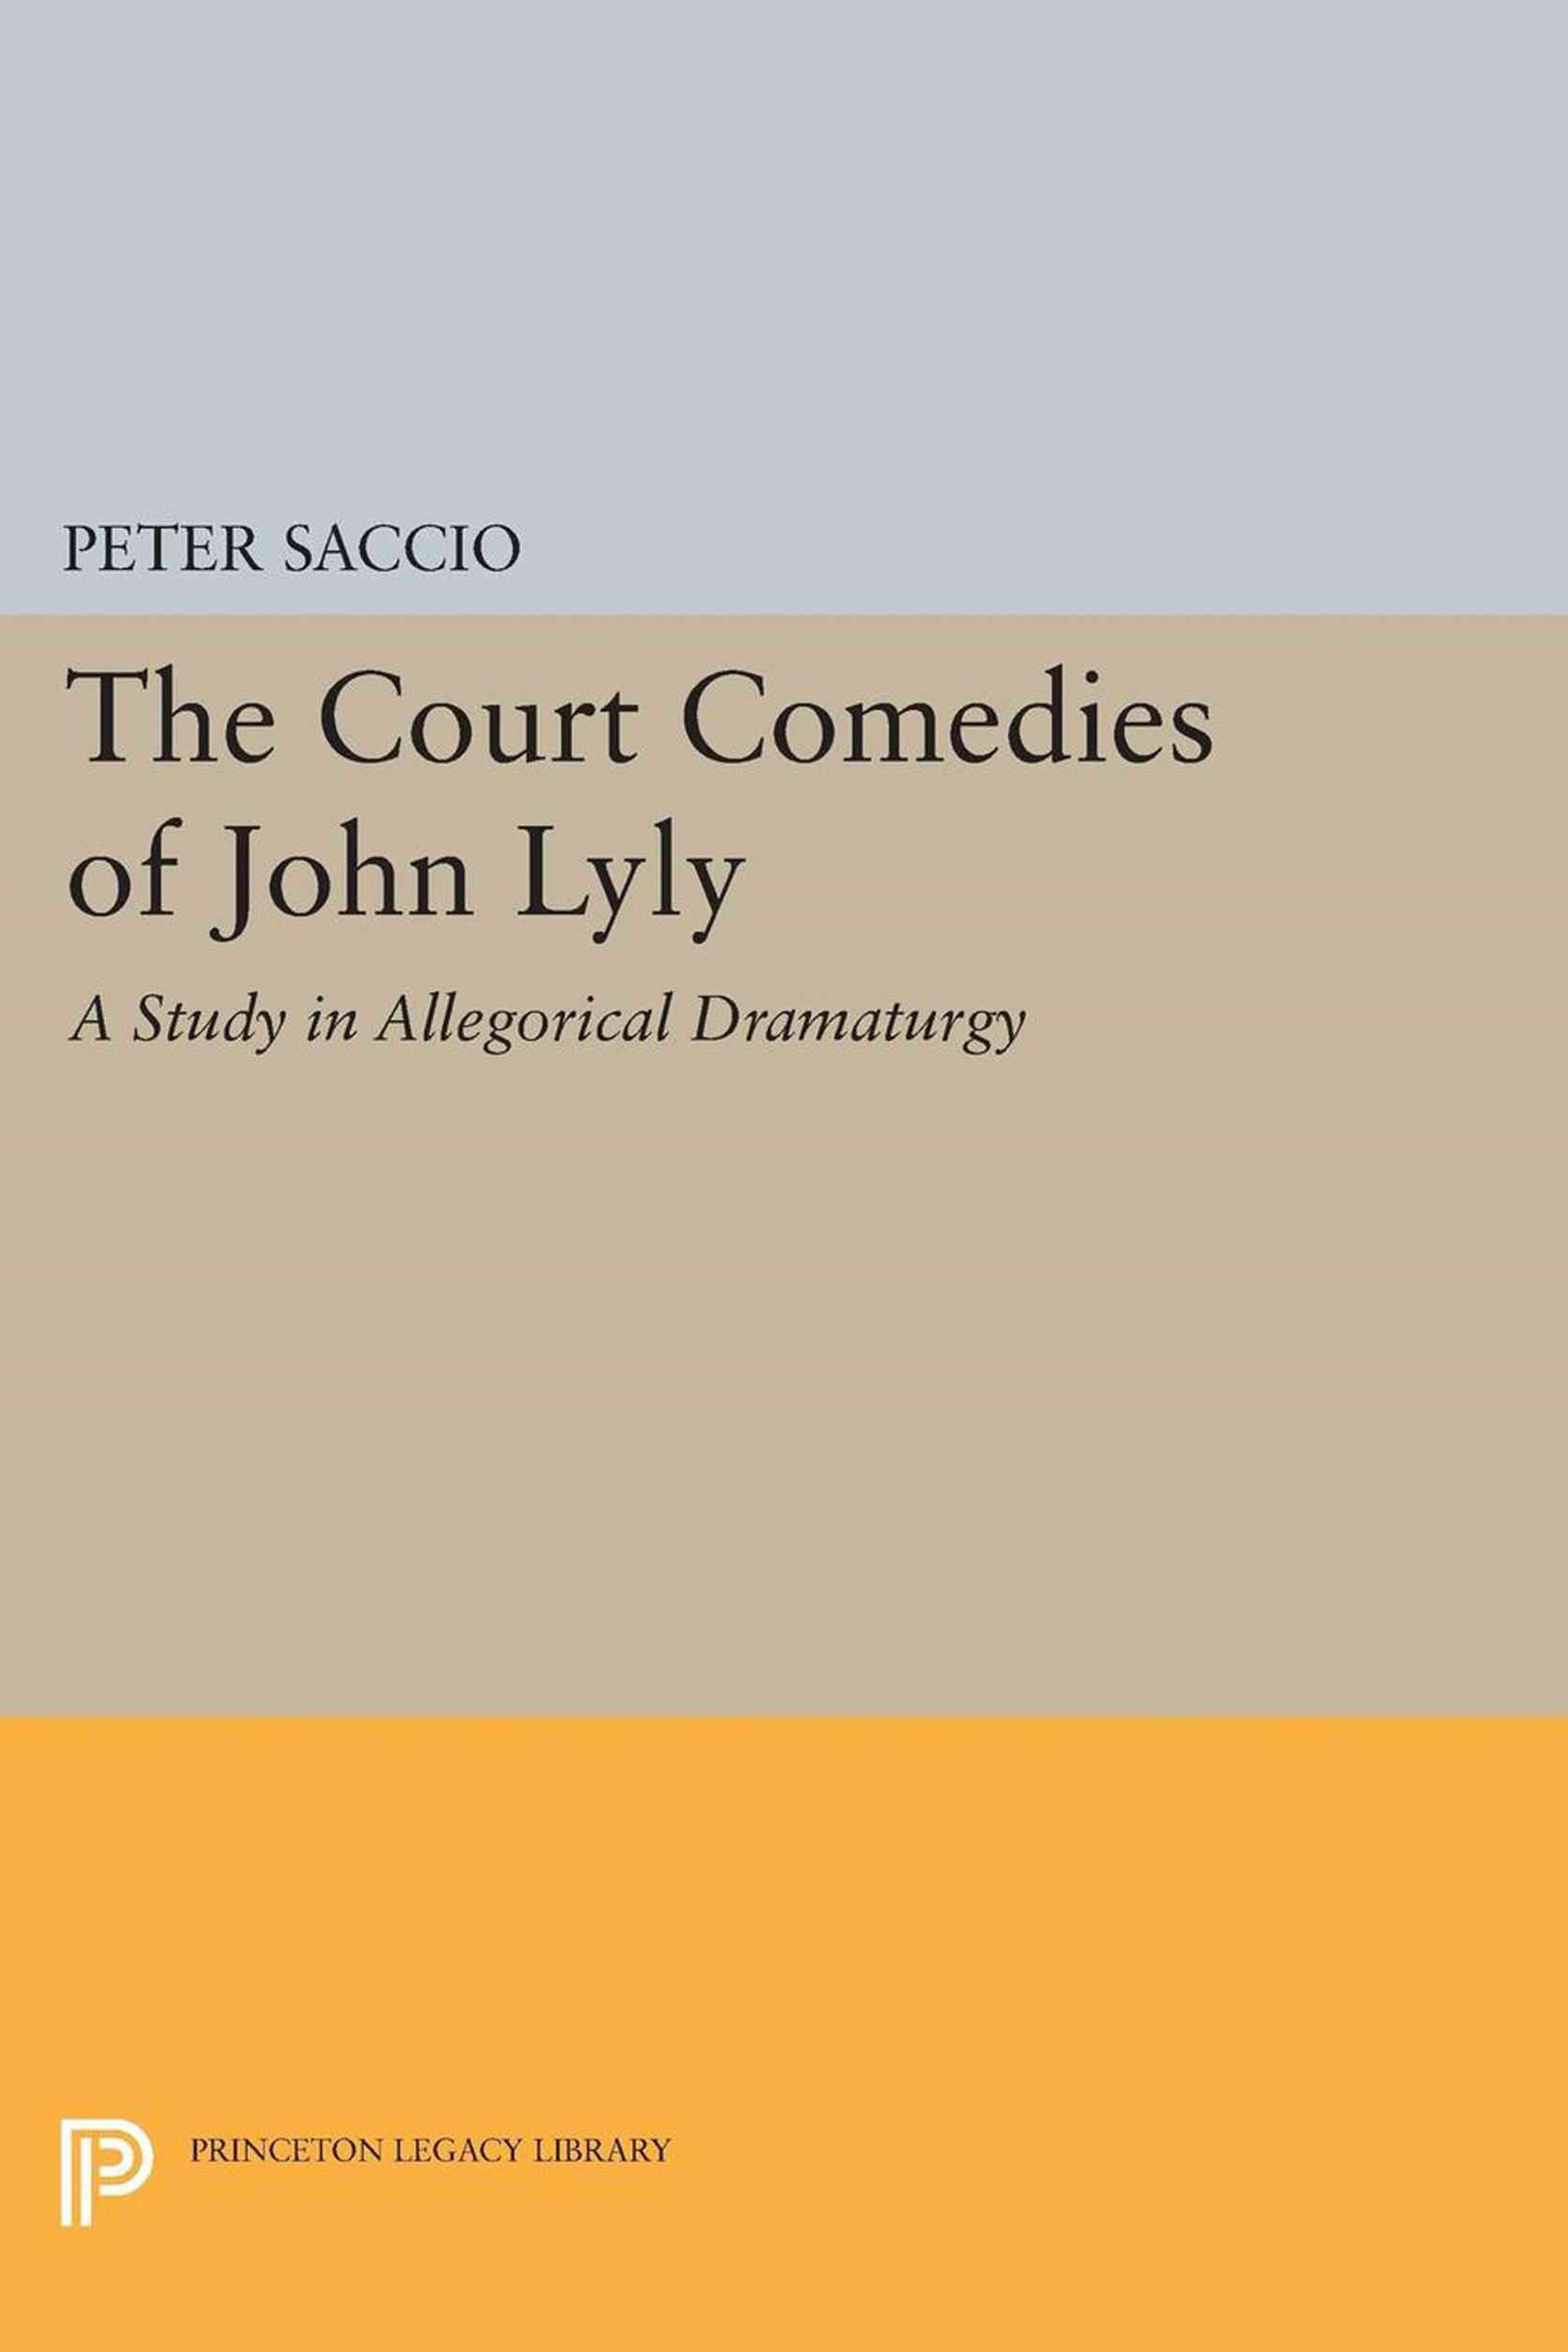 The Court Comedies of John Lyly